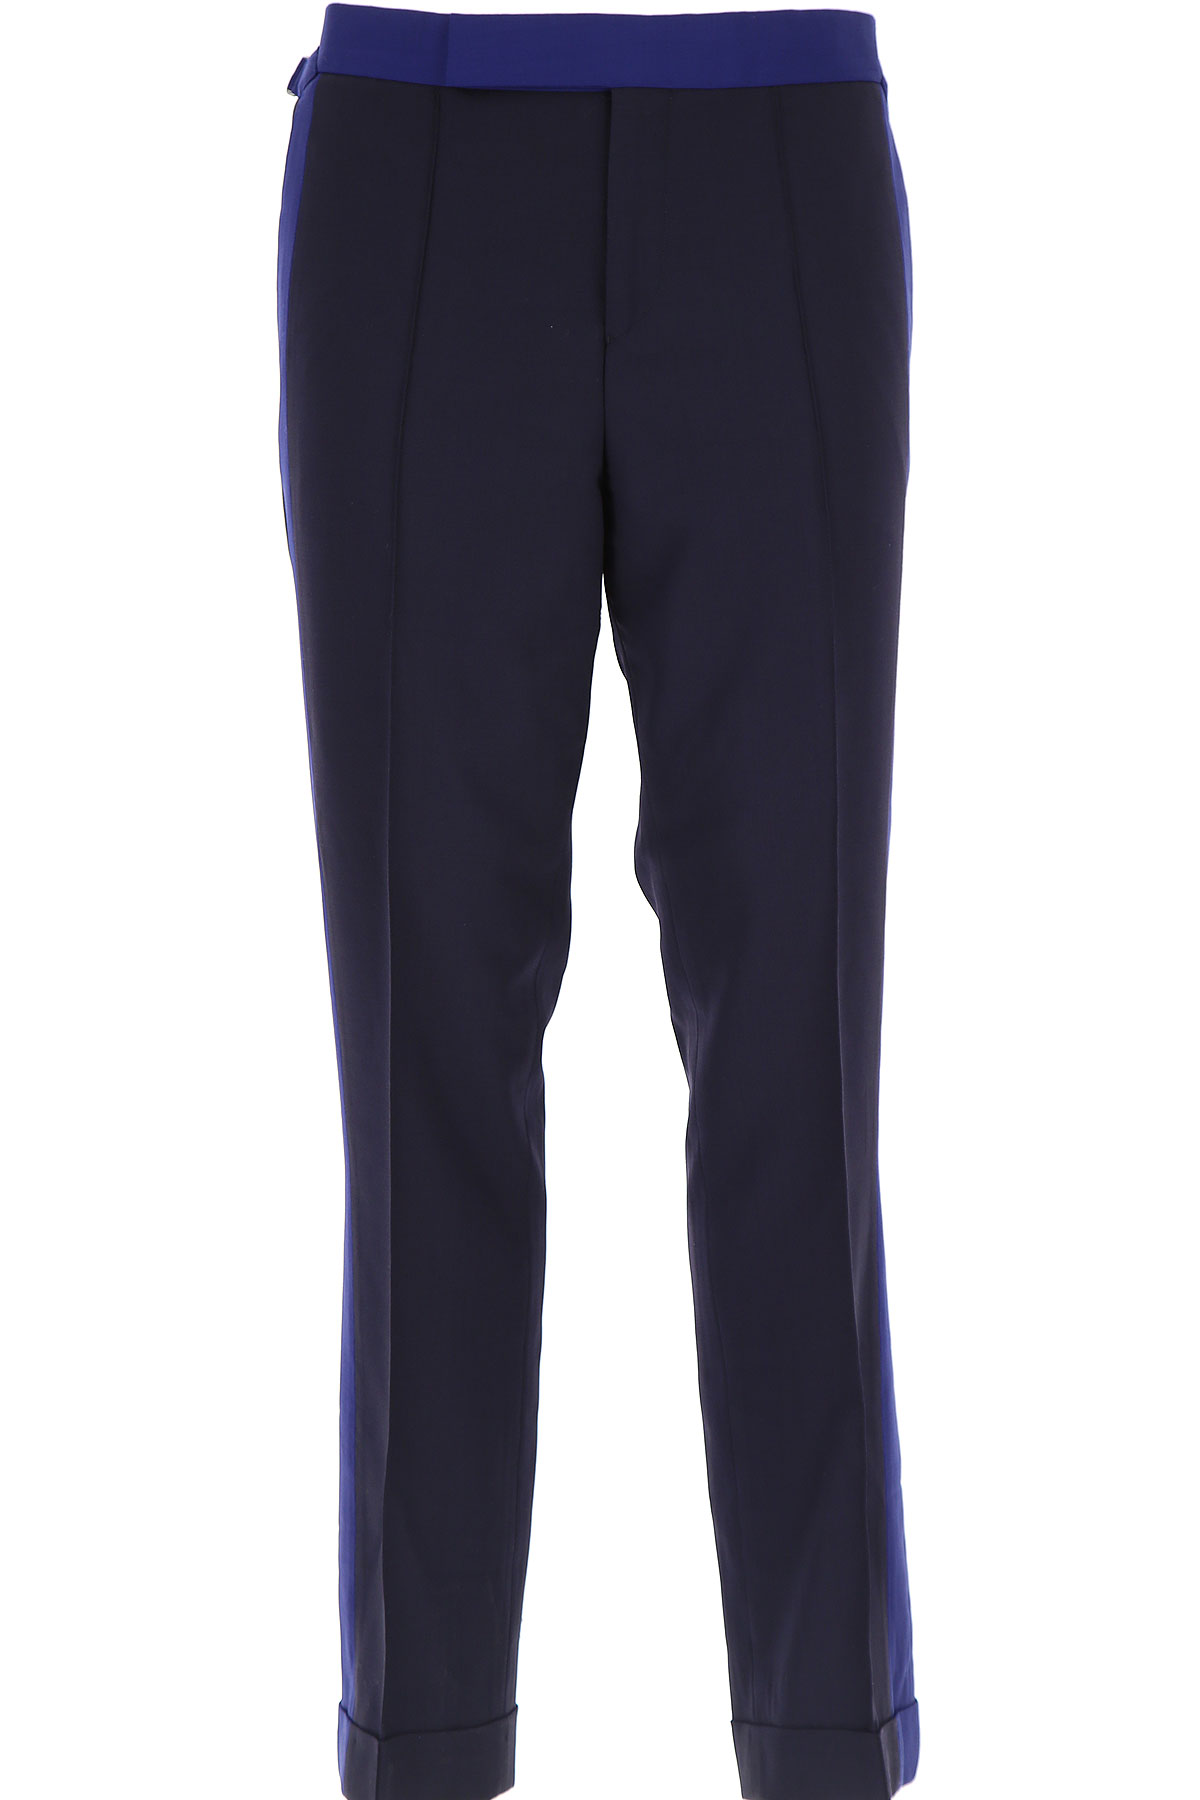 Paul Smith Pants for Men On Sale, Black, Cotton, 2017, 34 36